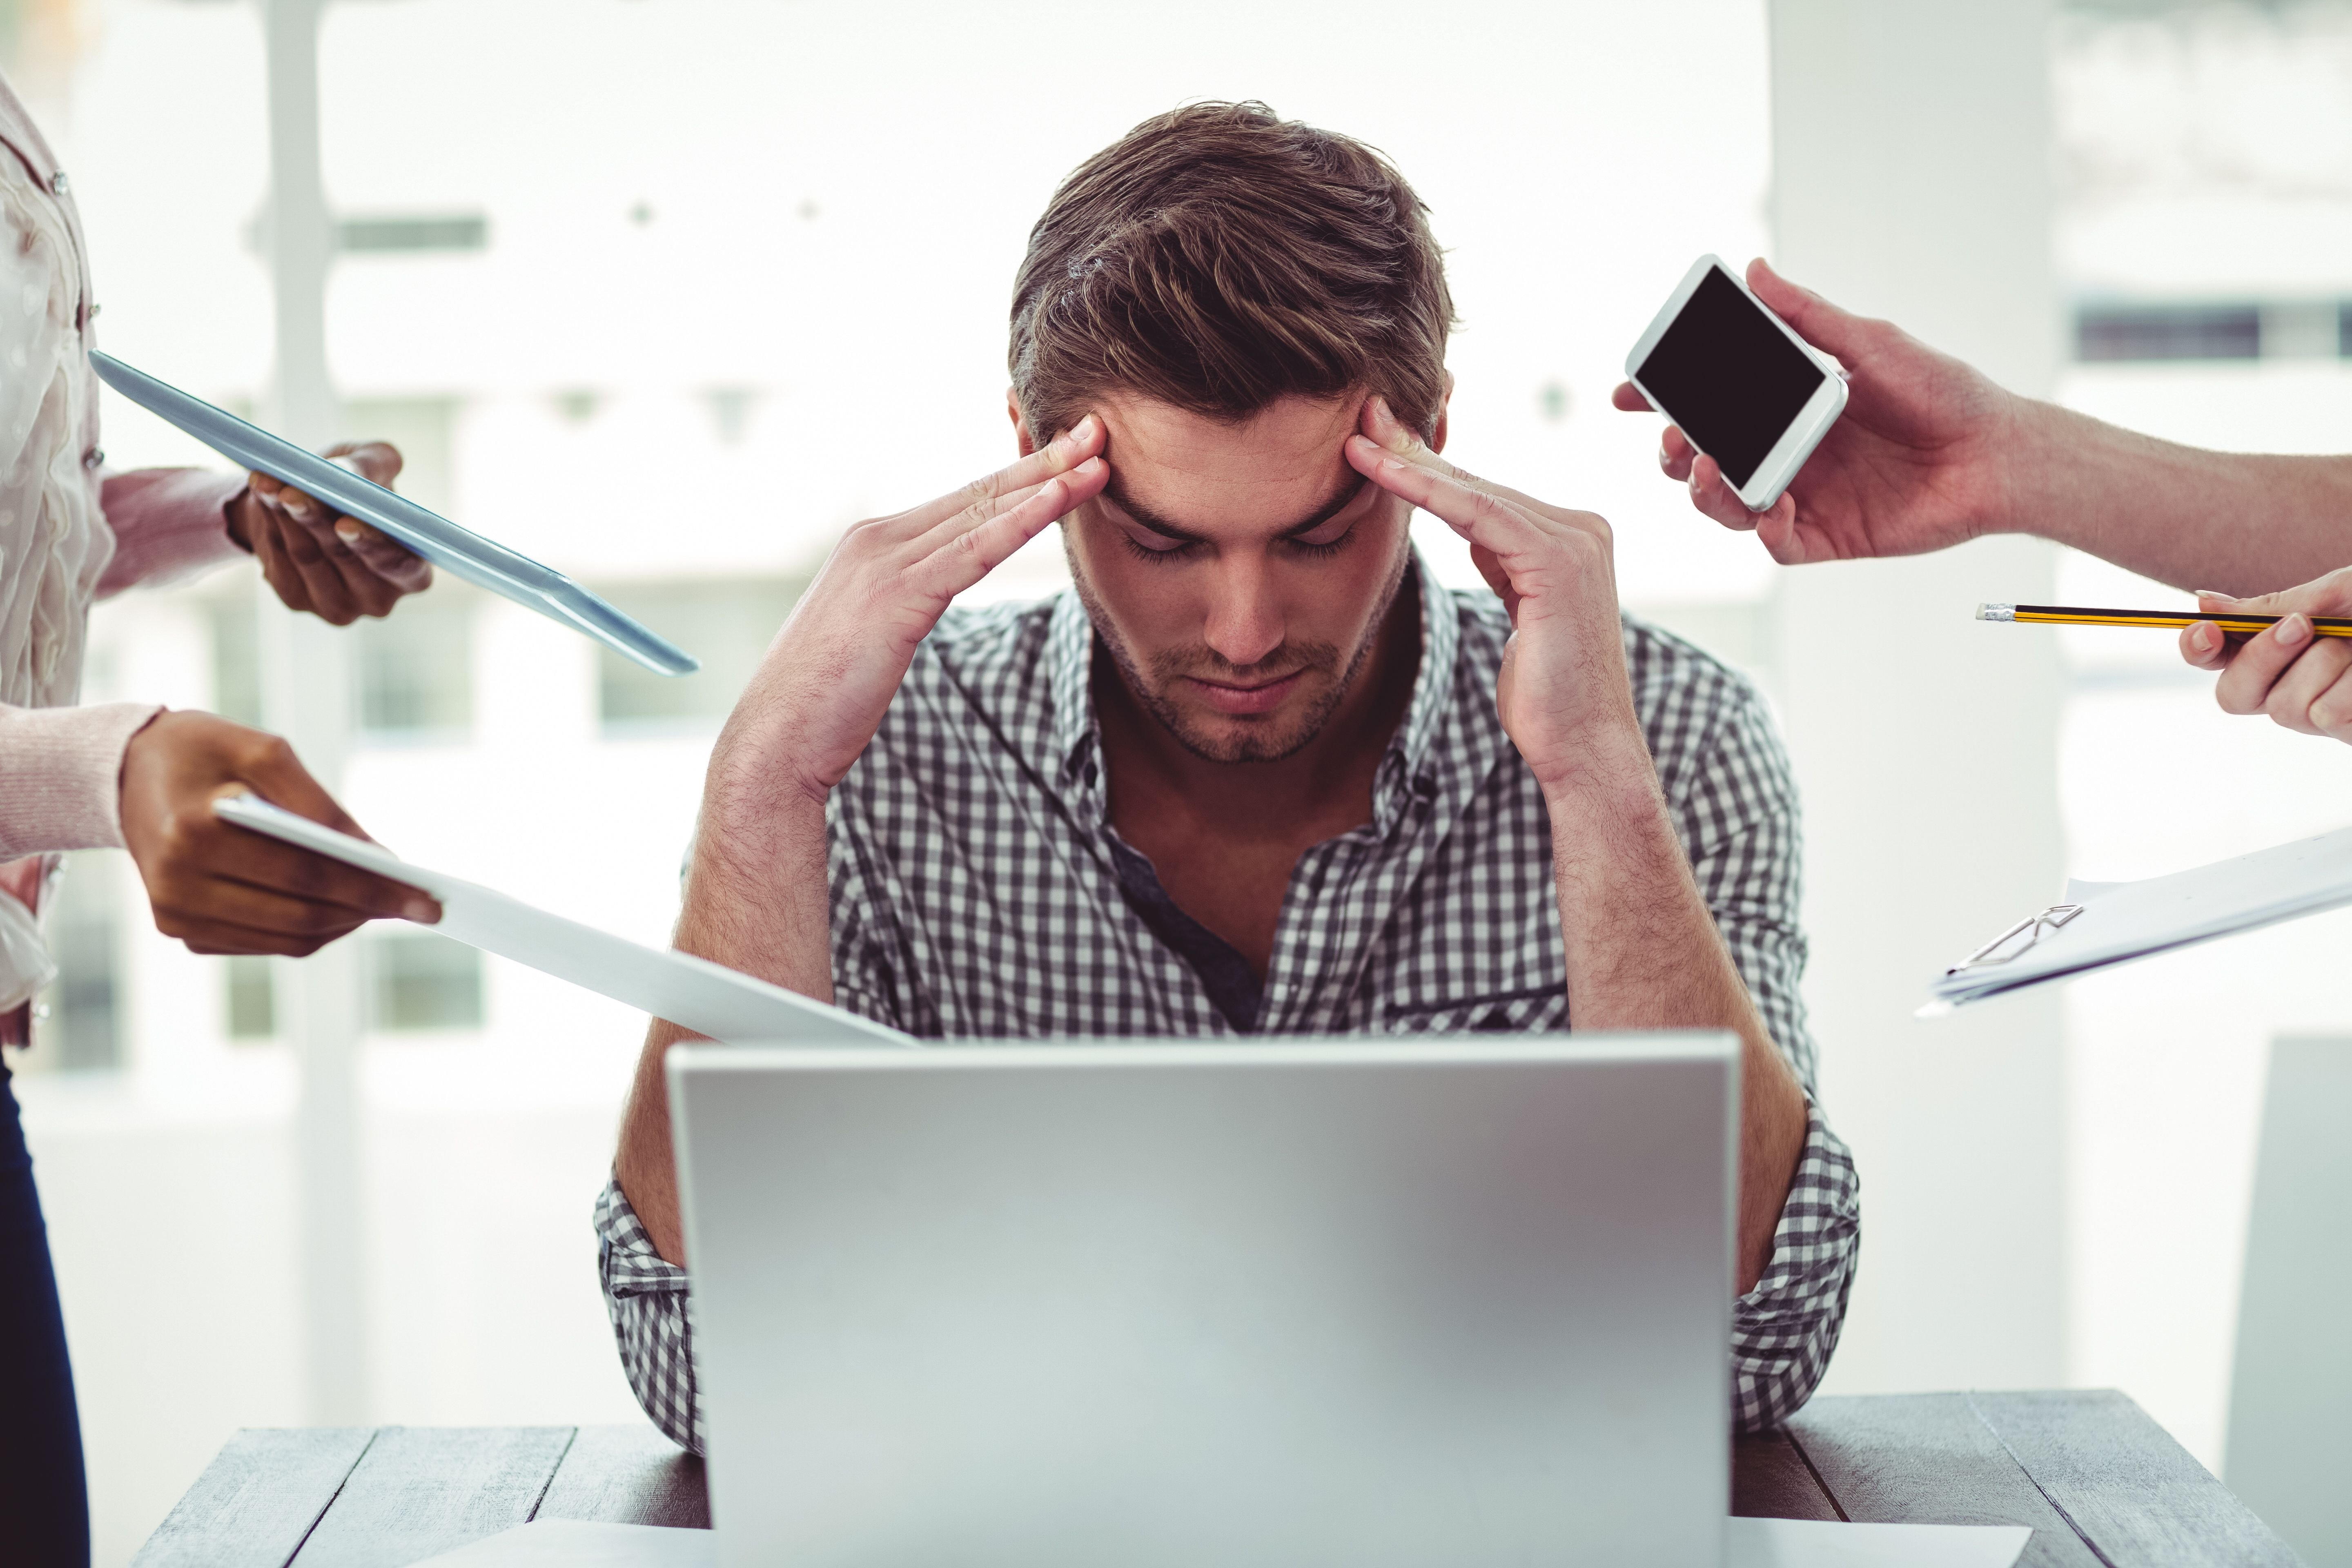 A man looks stressed at work.   Source: Shutterstock